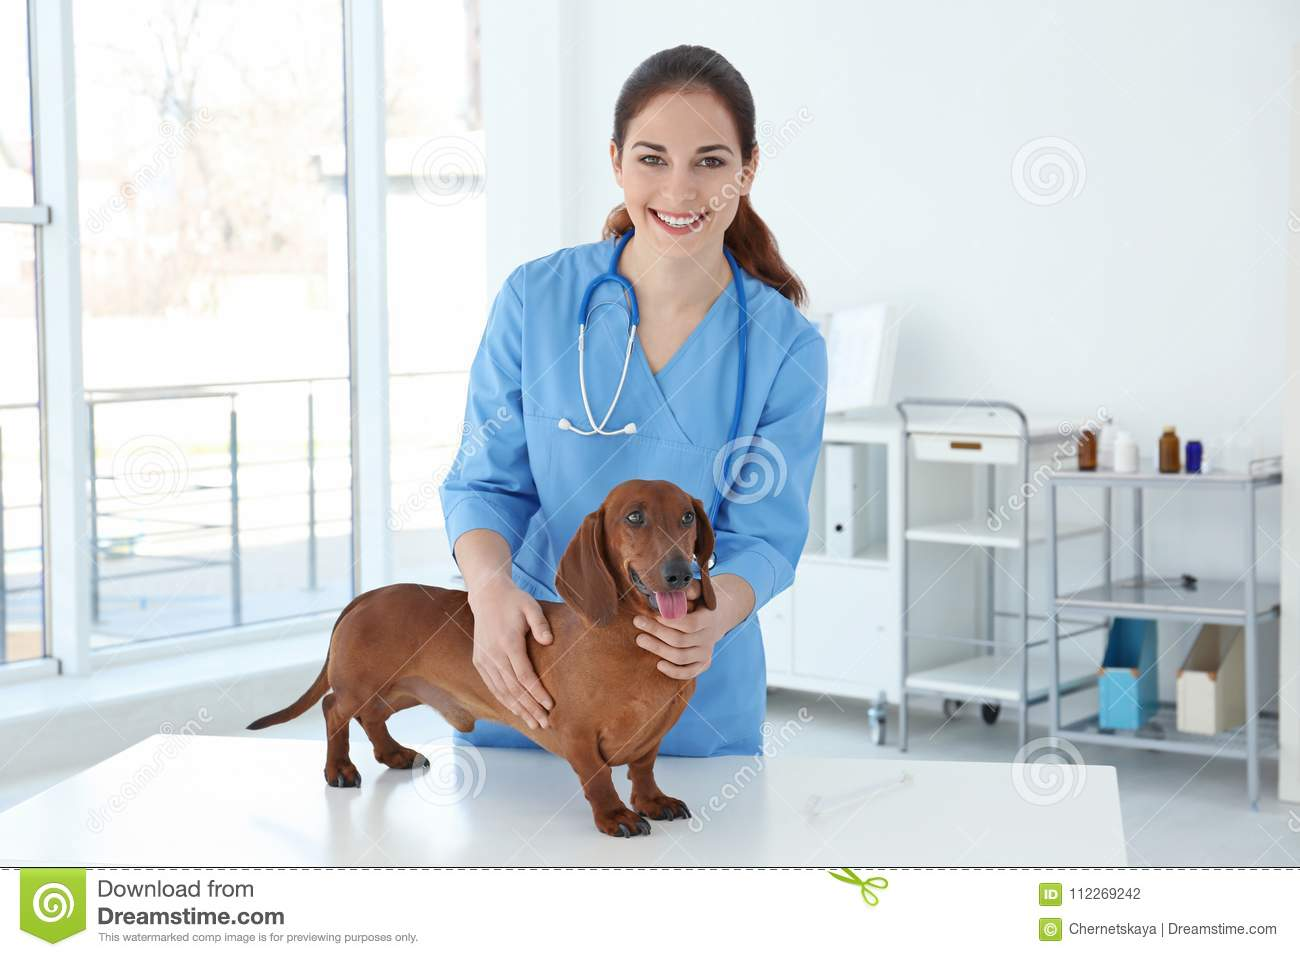 Woman with dog in veterinarian clinic